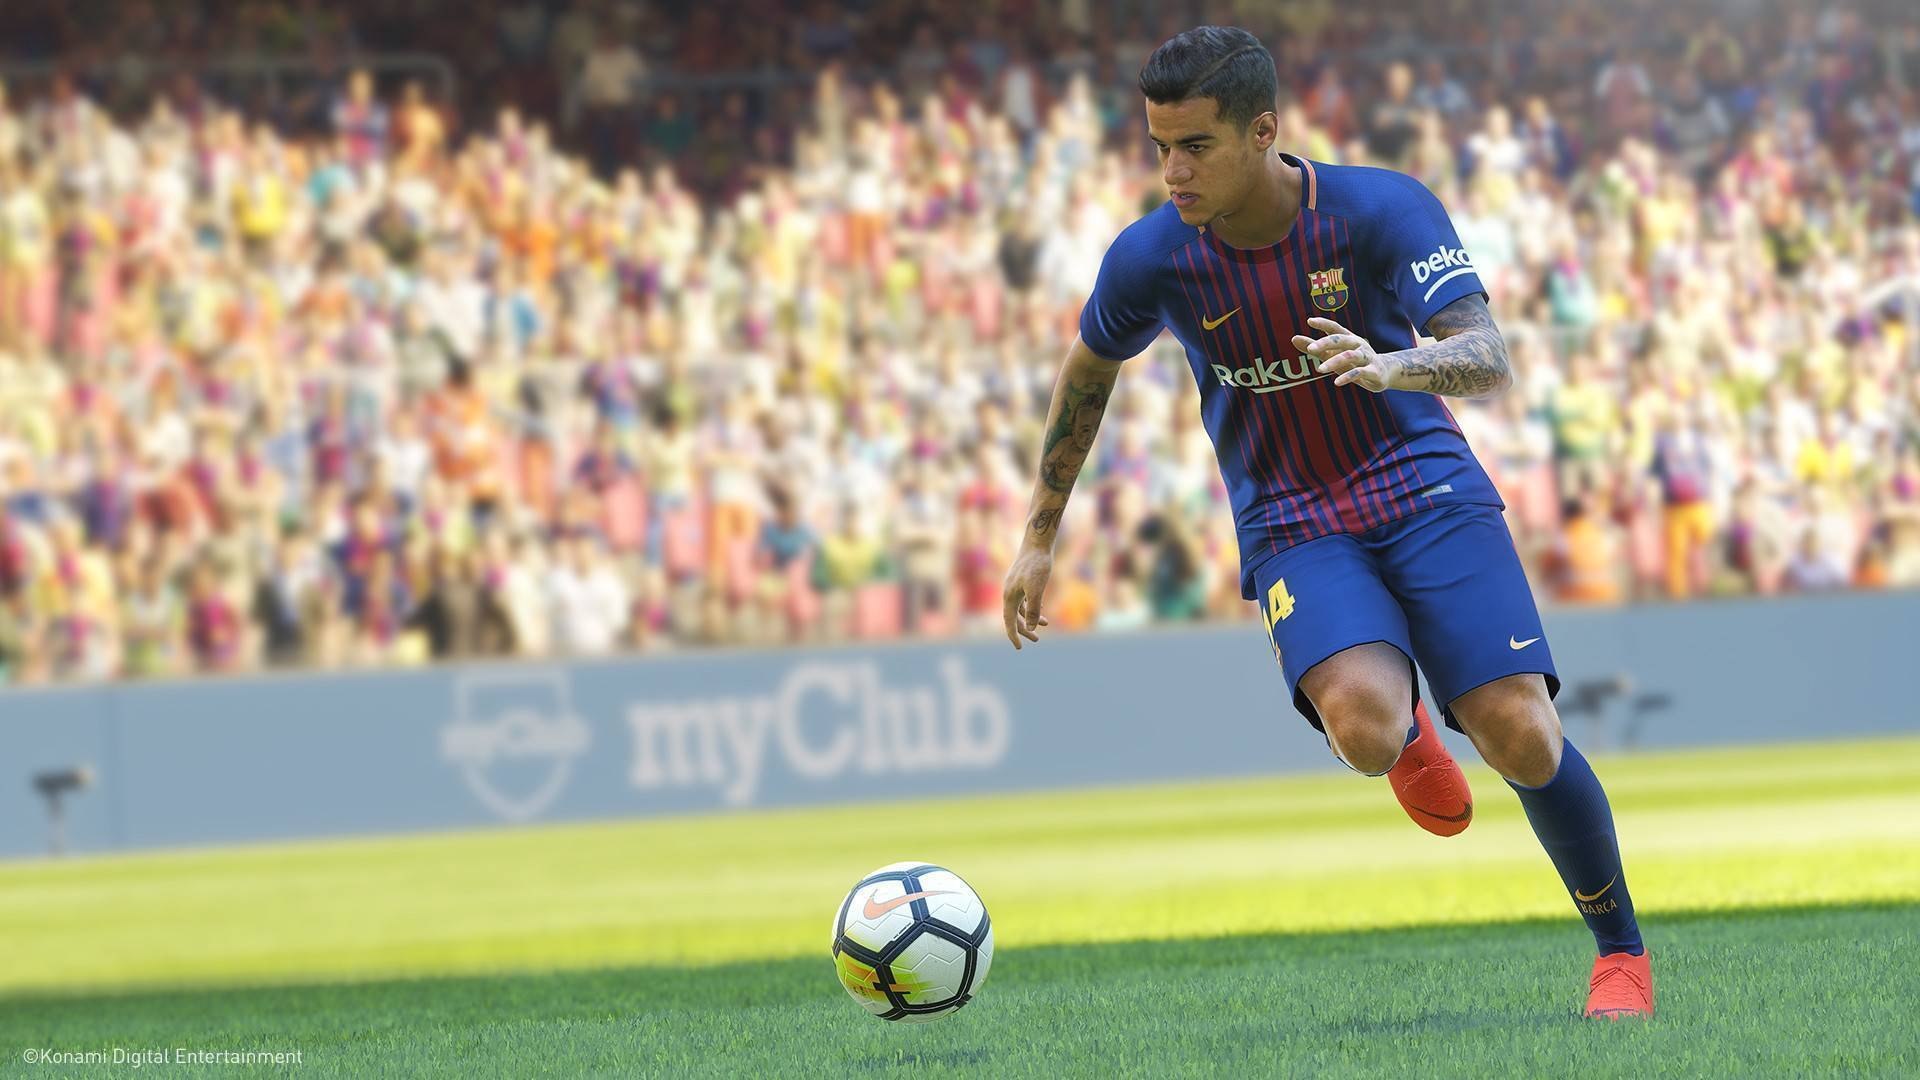 Konami releases a free version of PES 2019 screenshot